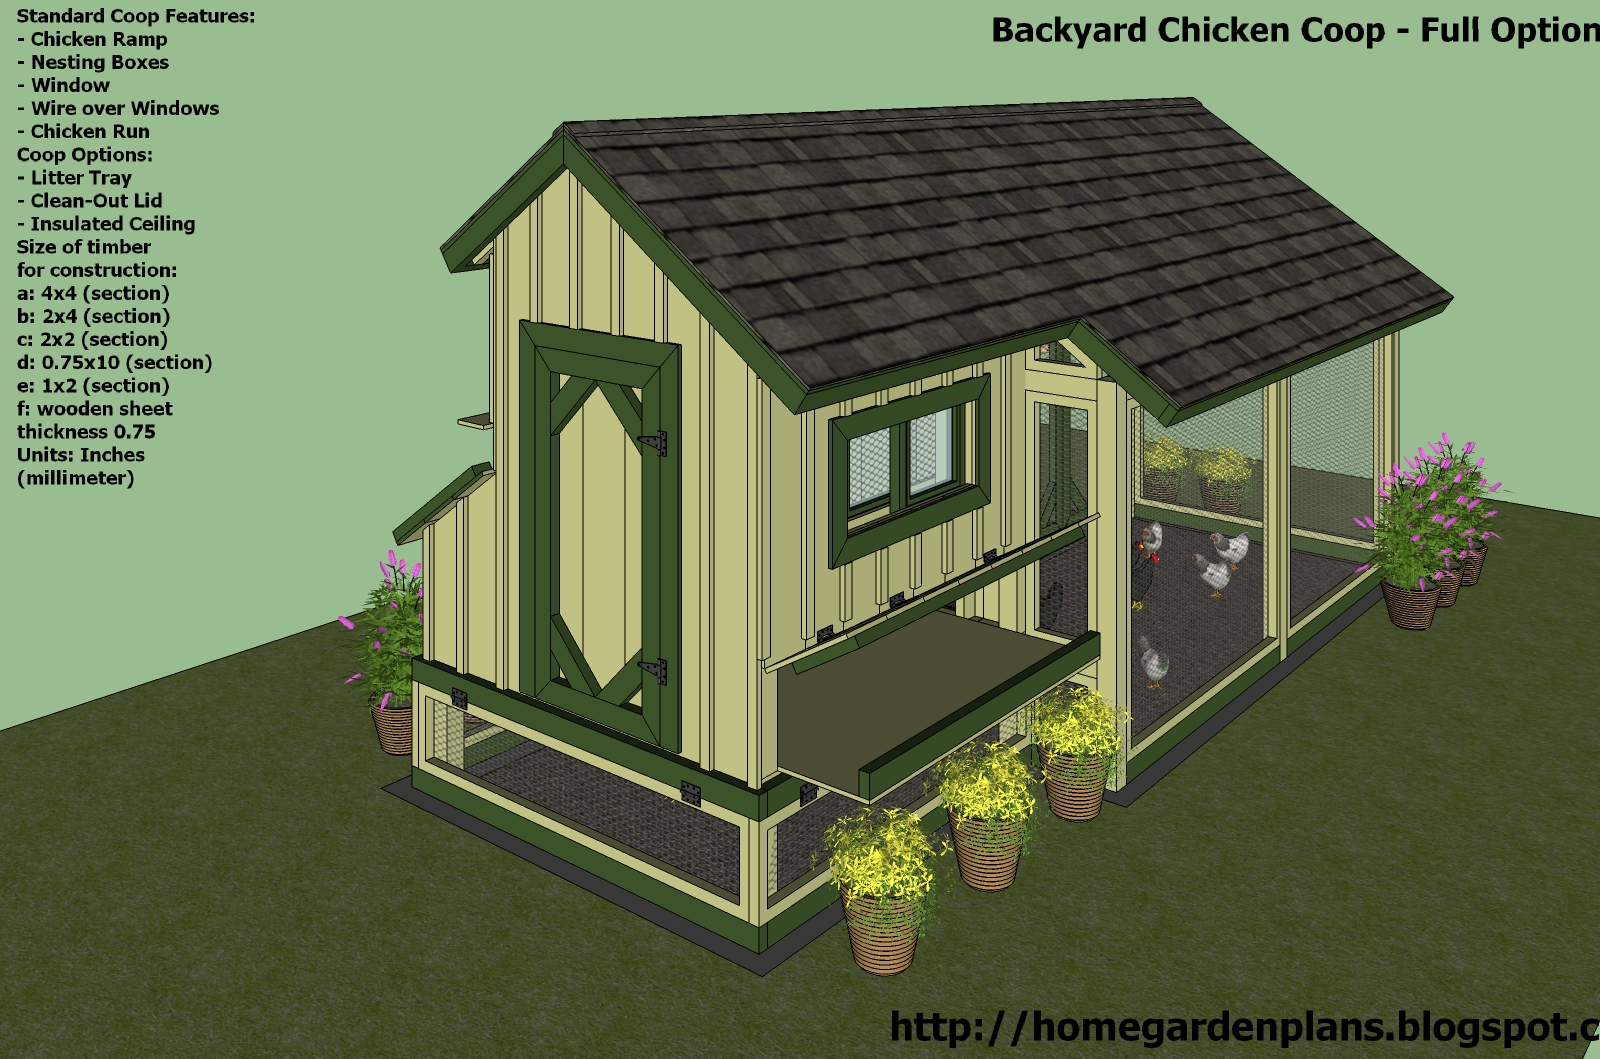 Free chicken coop plans for 20 hens learn how coop channel for Free coop plans